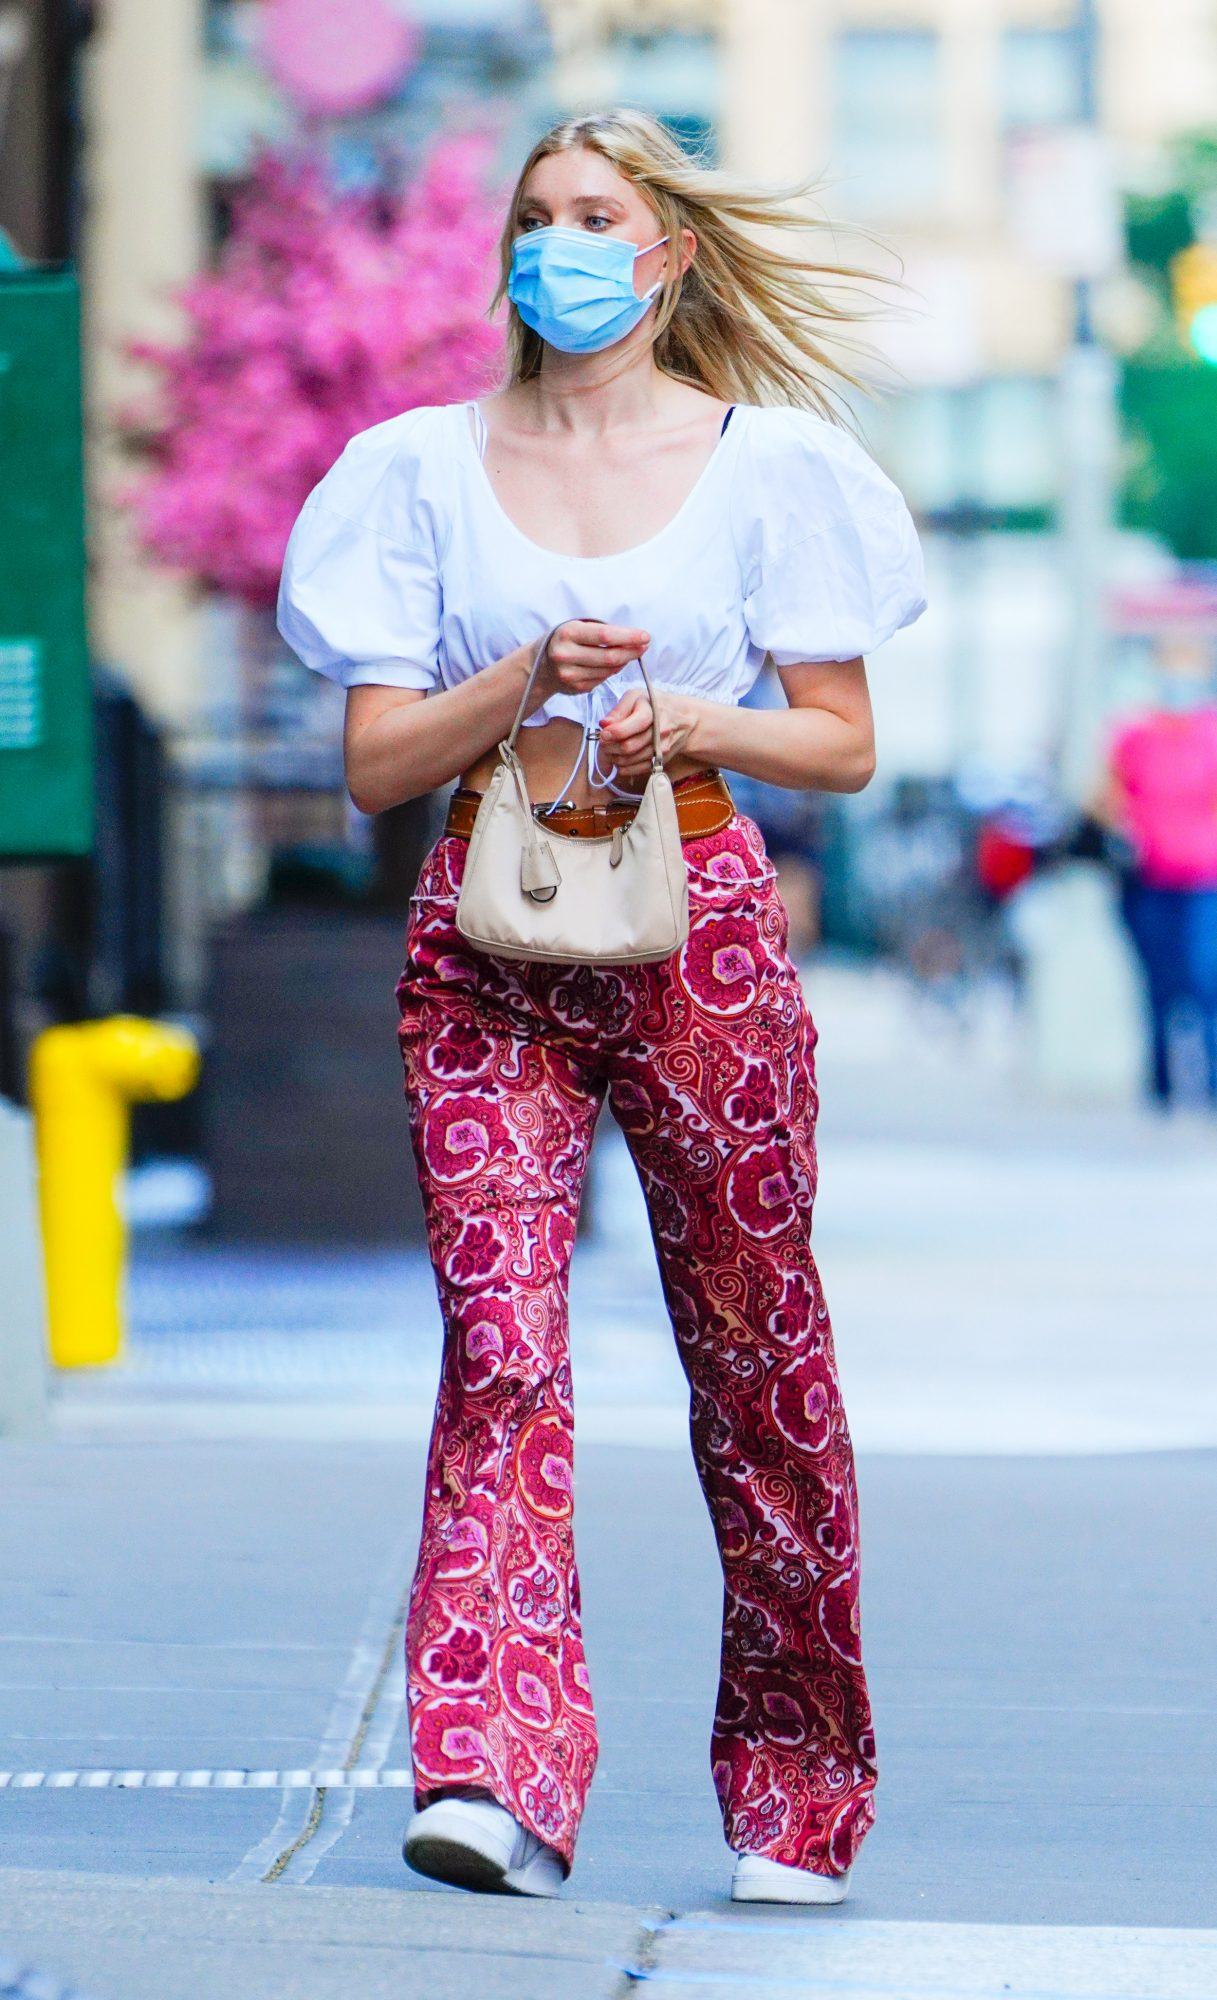 Controversial Paisley Pant Trend